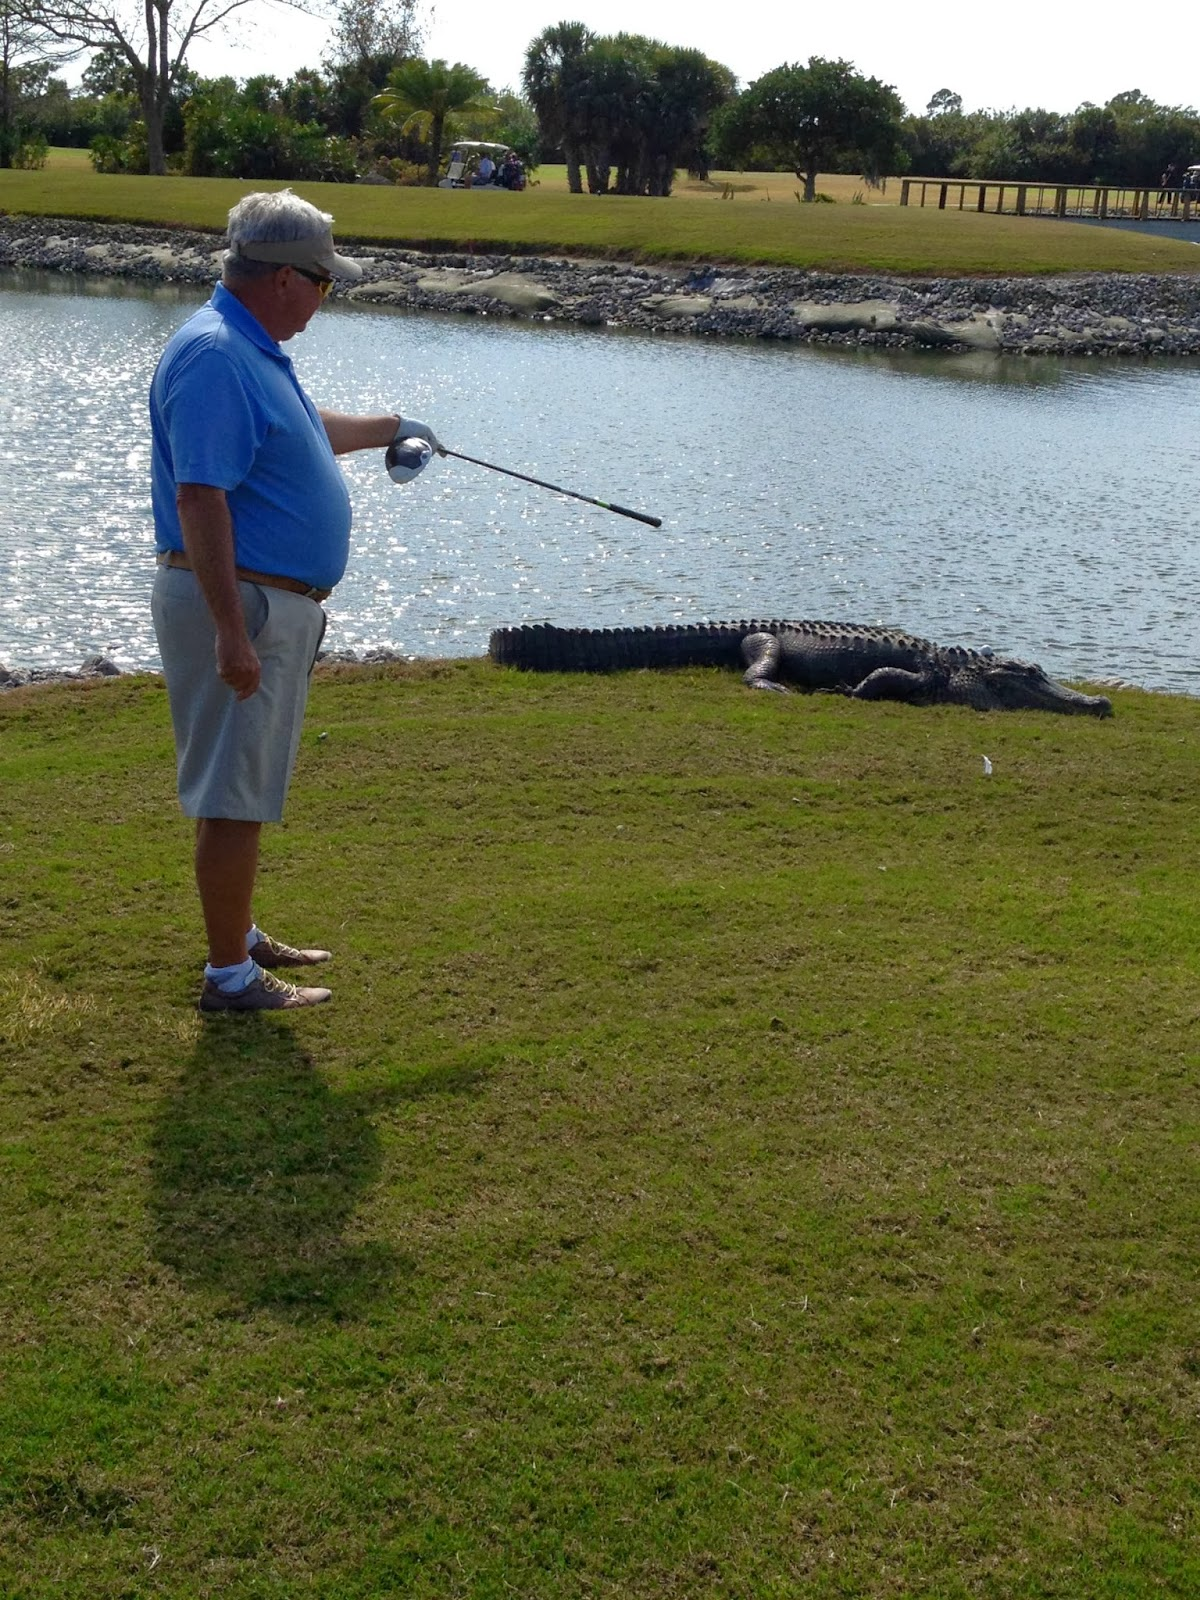 5b1ea9a585c87 A Golf Ball Lands on Top of a Alligator's Head in Florida | BlueisKewl